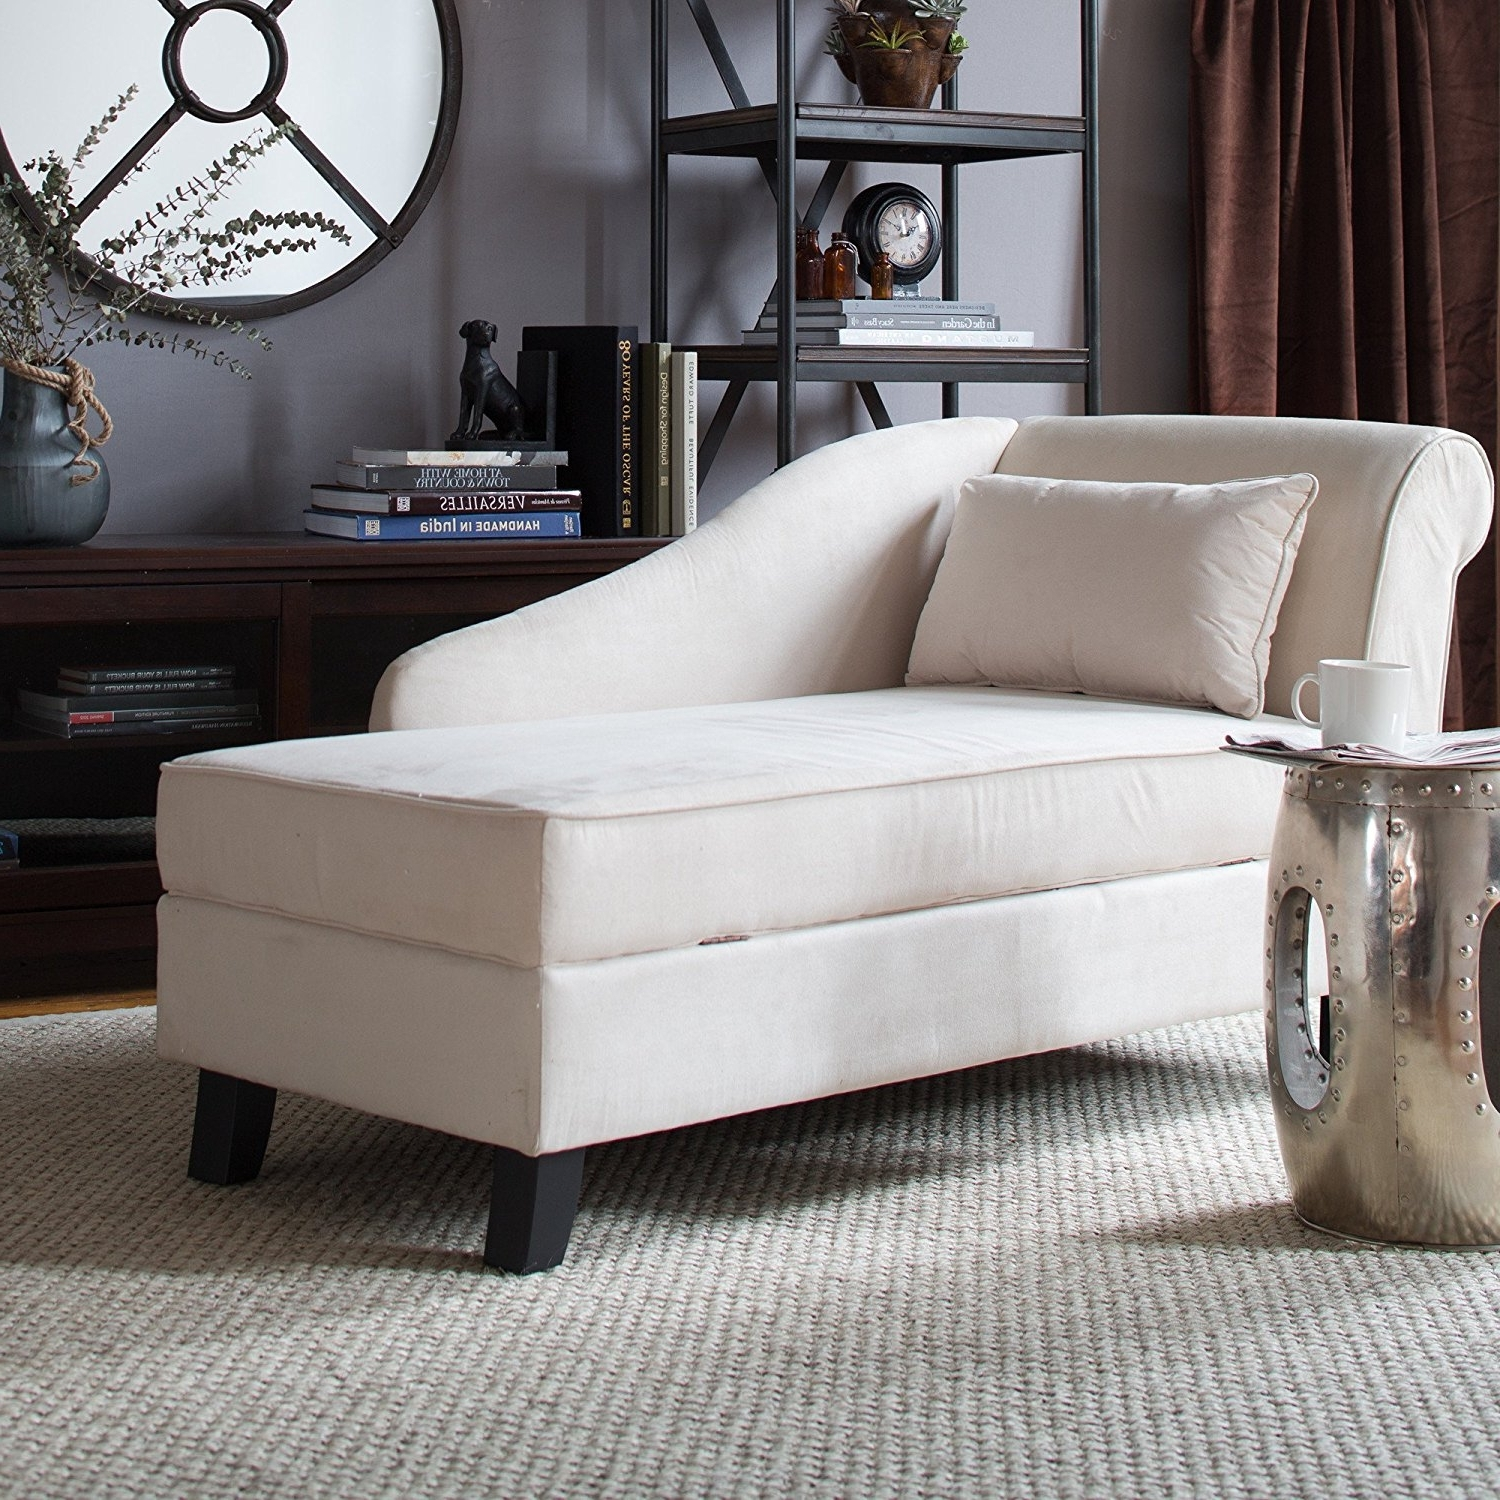 Fashionable Chaise Lounge Chairs For Small Spaces Regarding Home Designs : Living Room Chaise Lounge Chairs Sofa Cool Lounge (View 7 of 15)